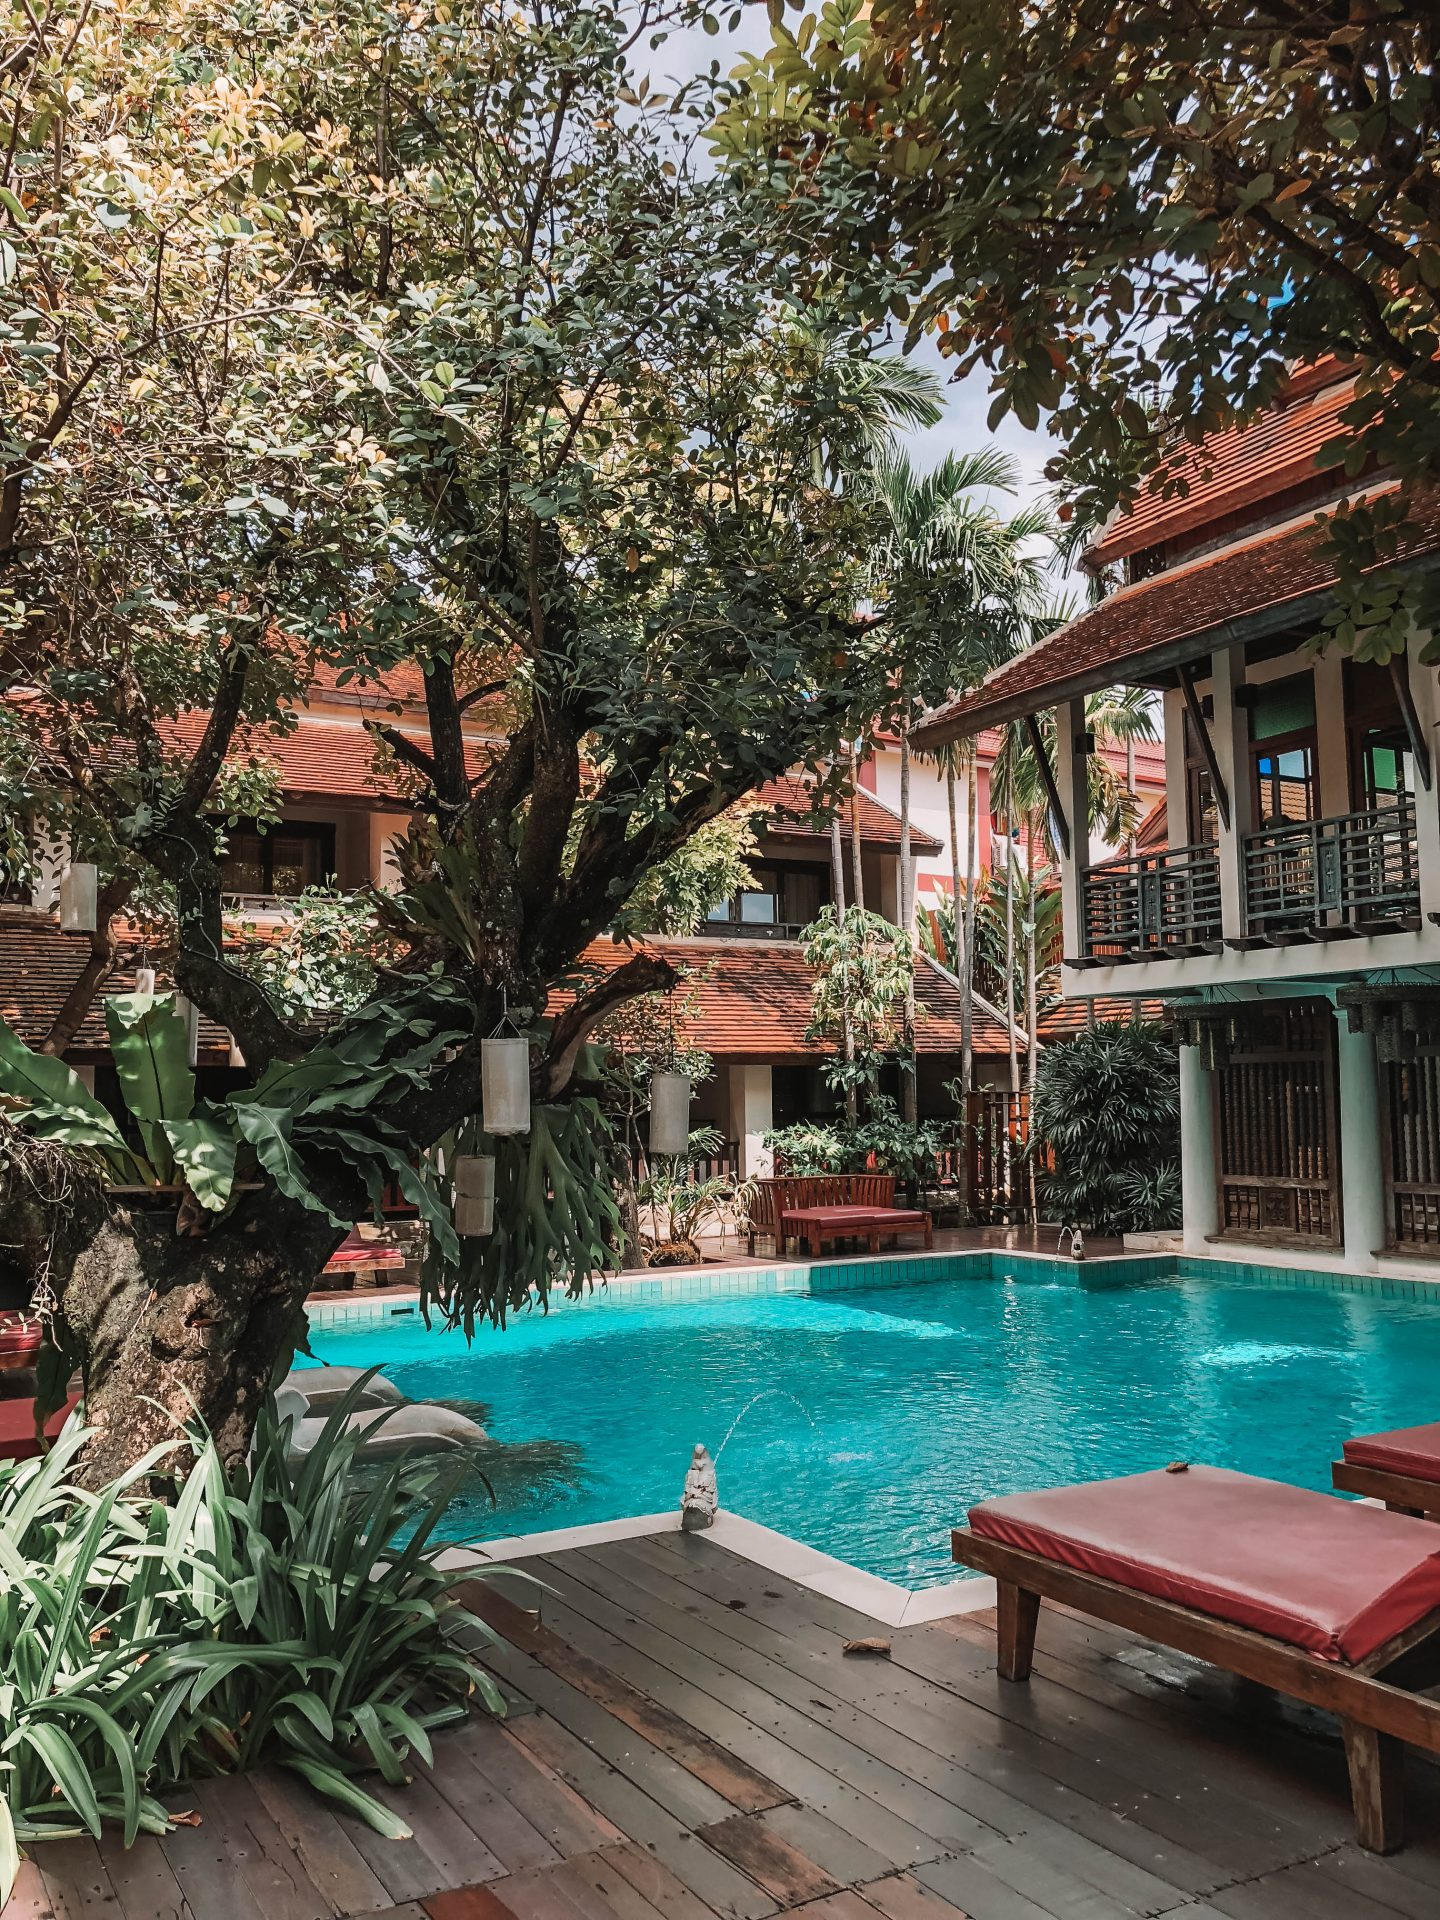 Hotel The Rim Chiang Mai - Blondie Baby blog mode et voyages